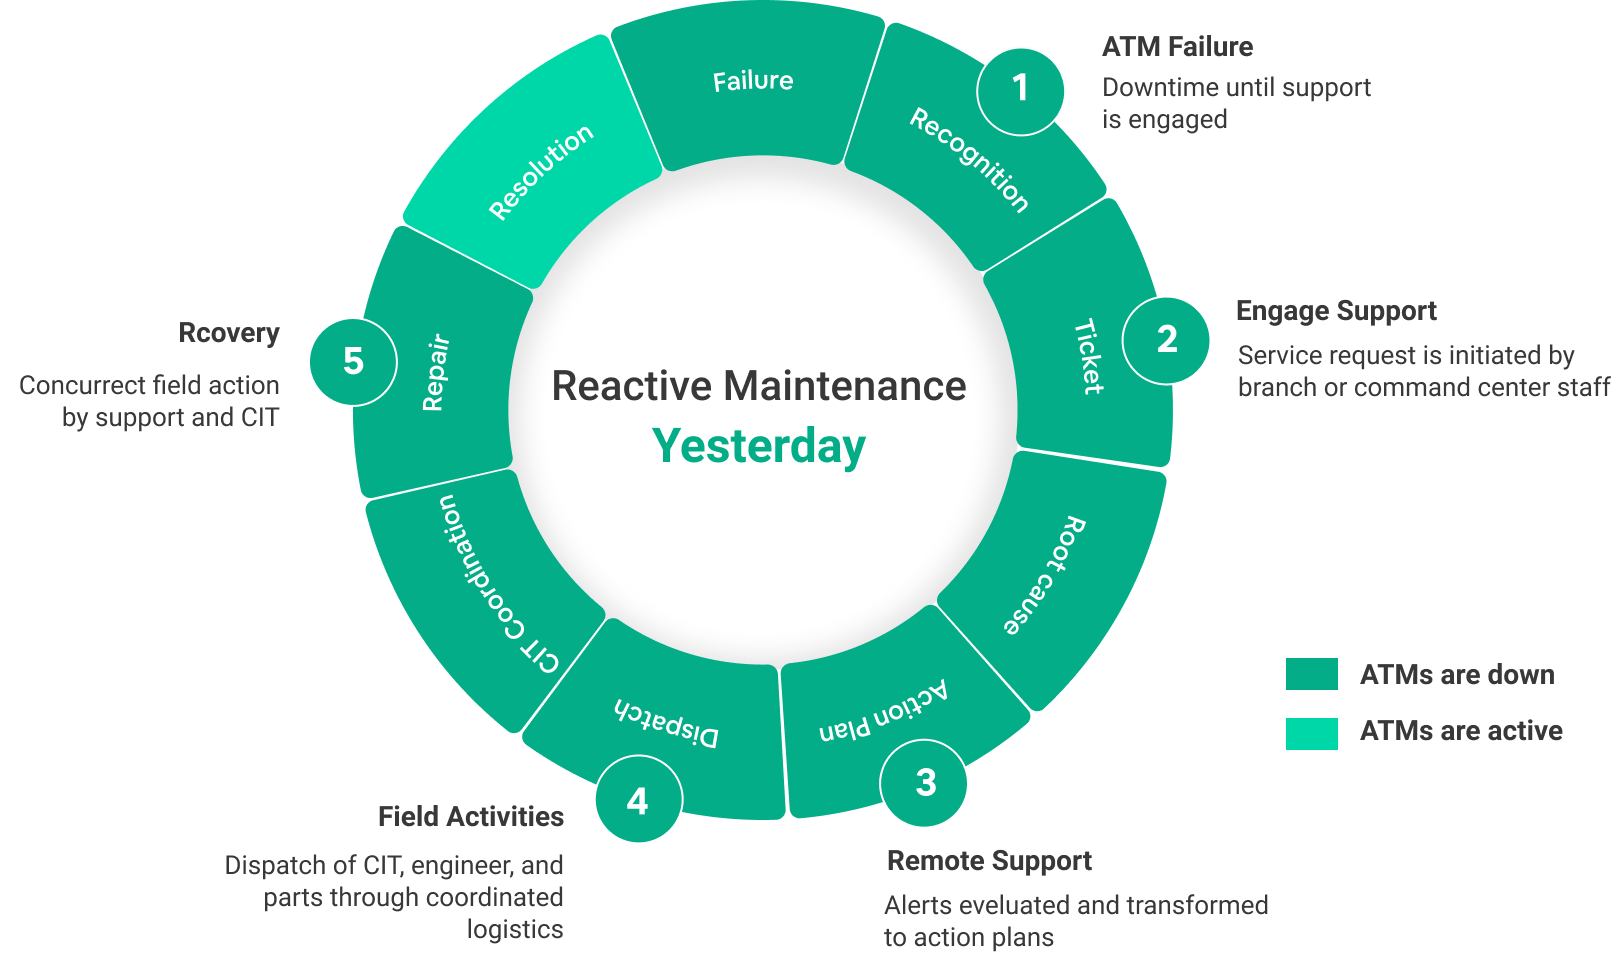 Reactive Maintenance of ATMS